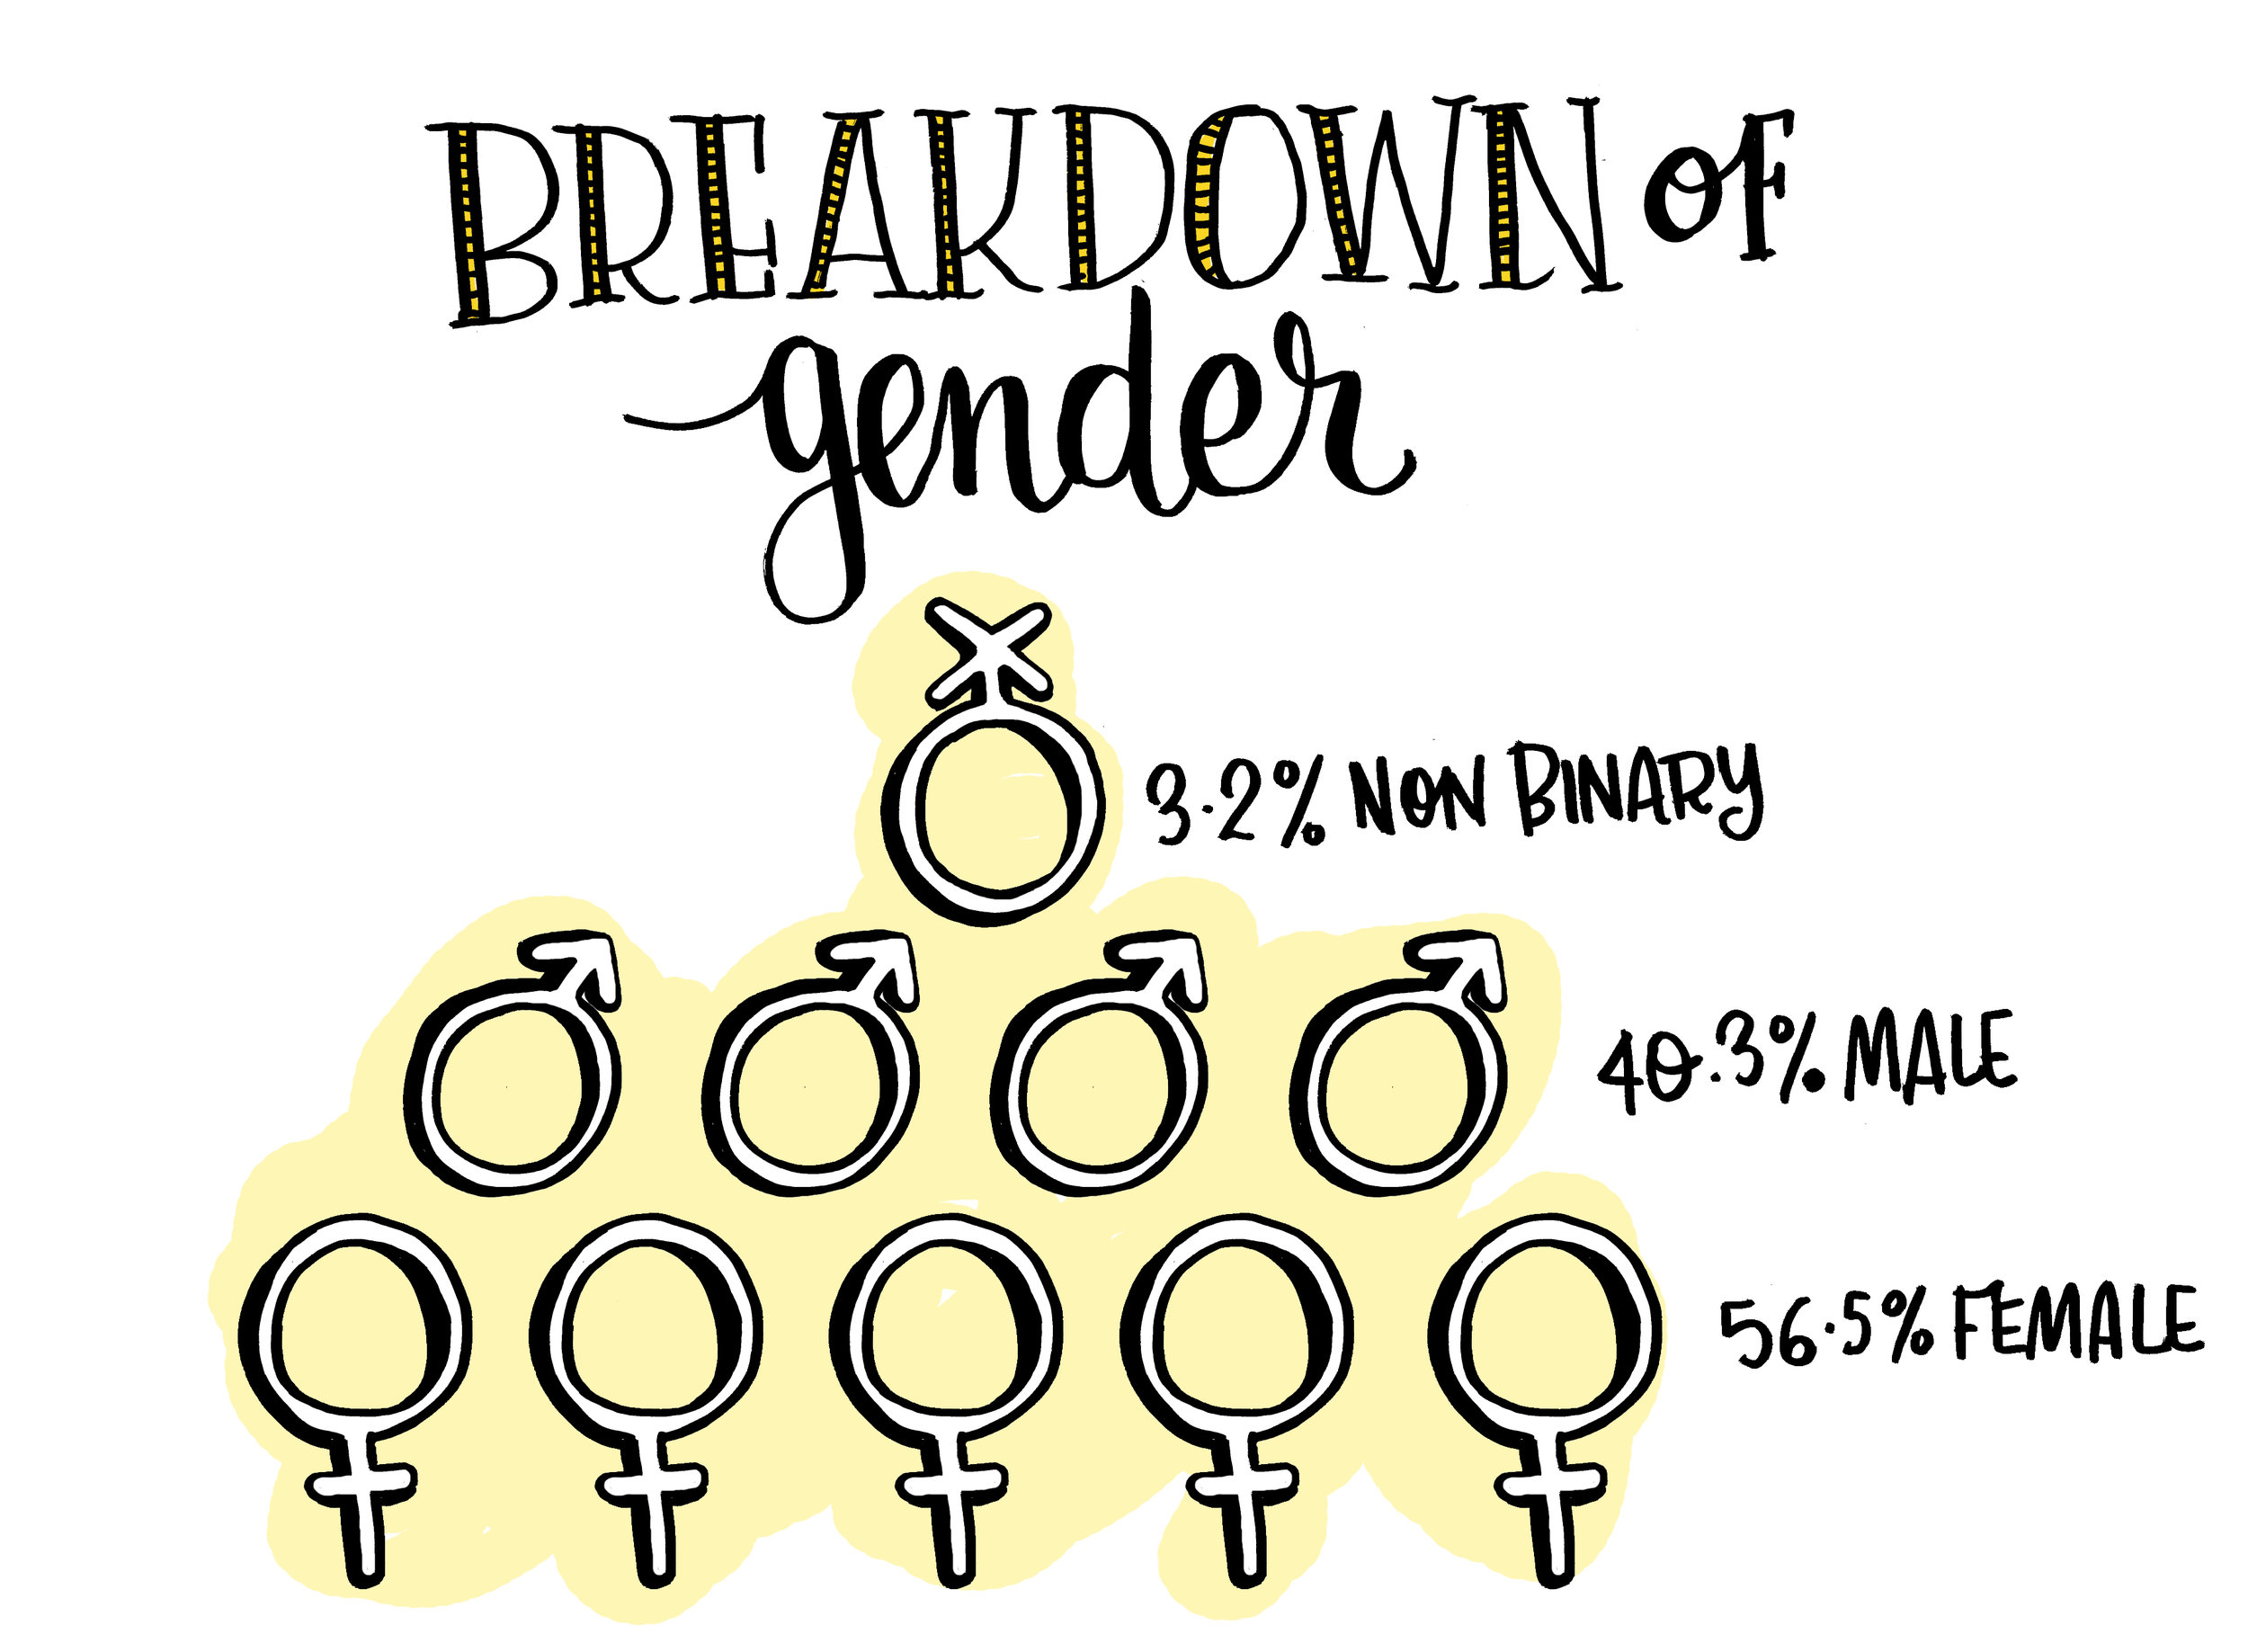 Graph showing participant breakdown by gender